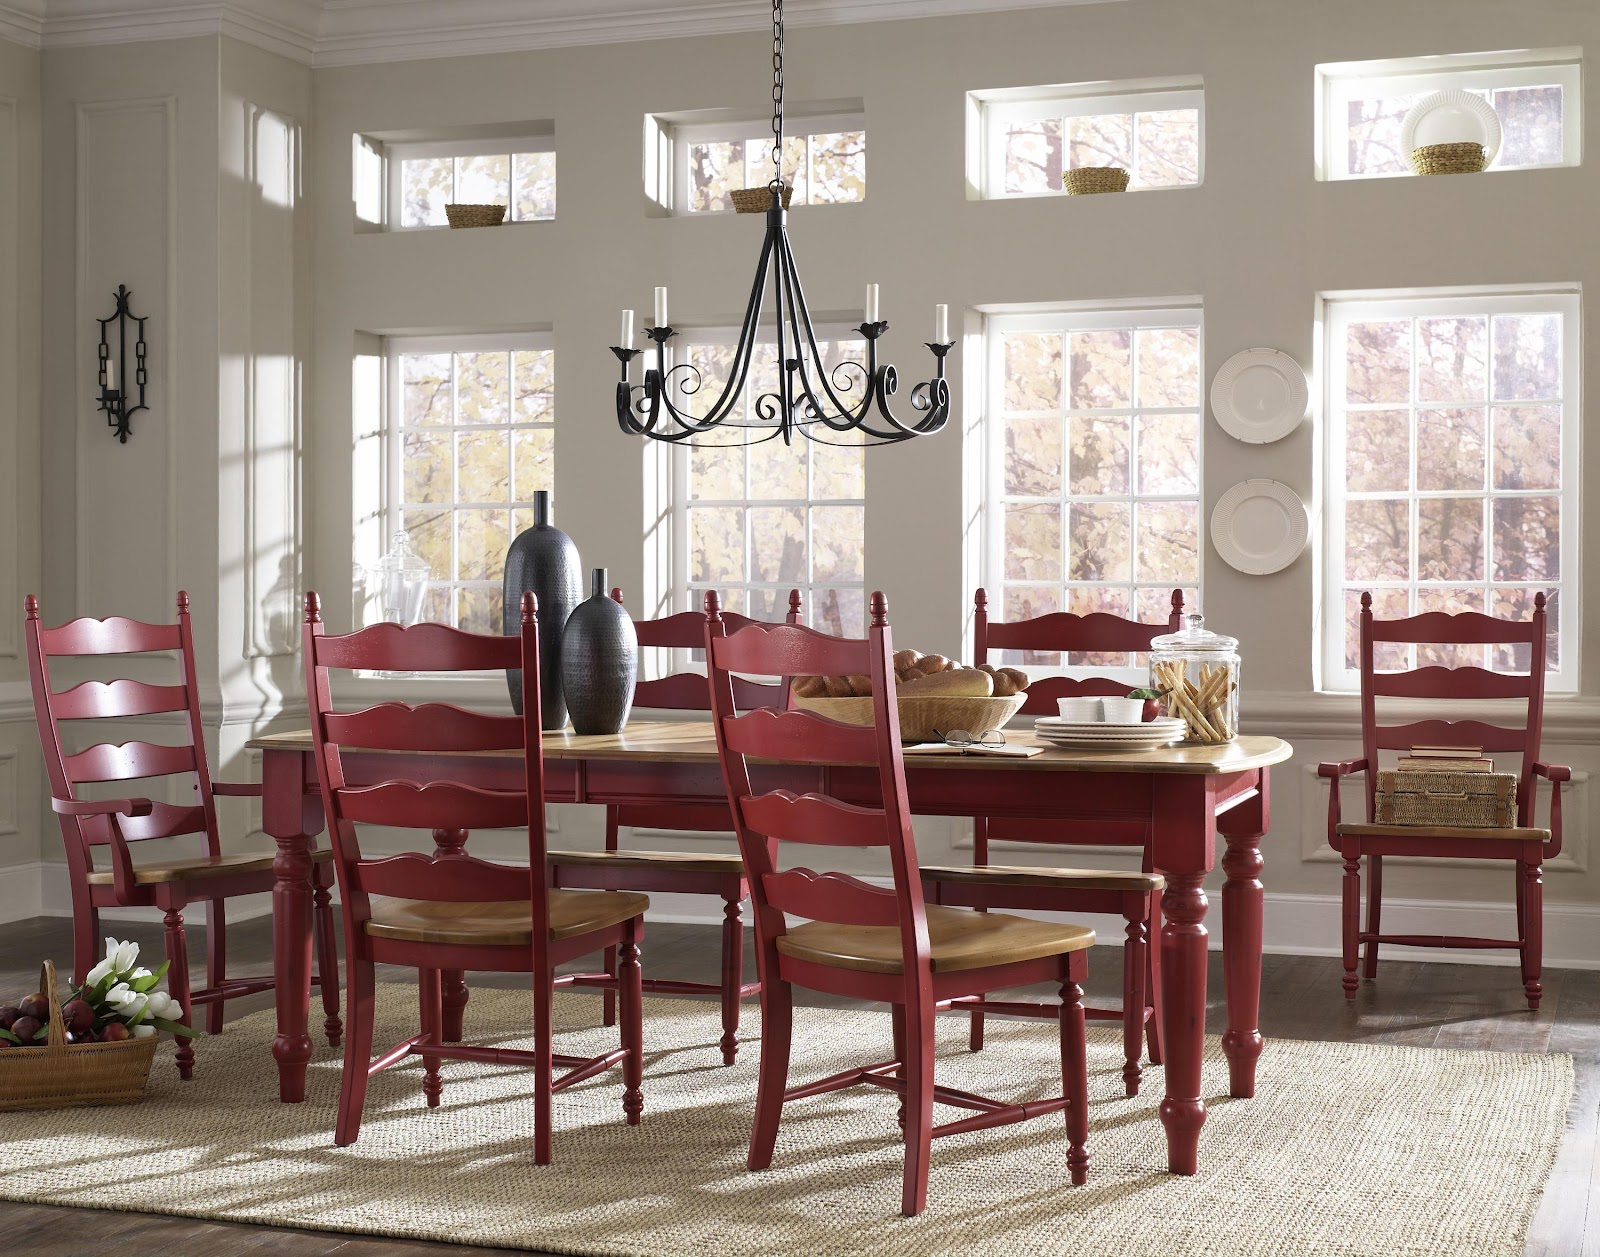 Canadel dining room sets new york dining room unique for Country style dining room sets